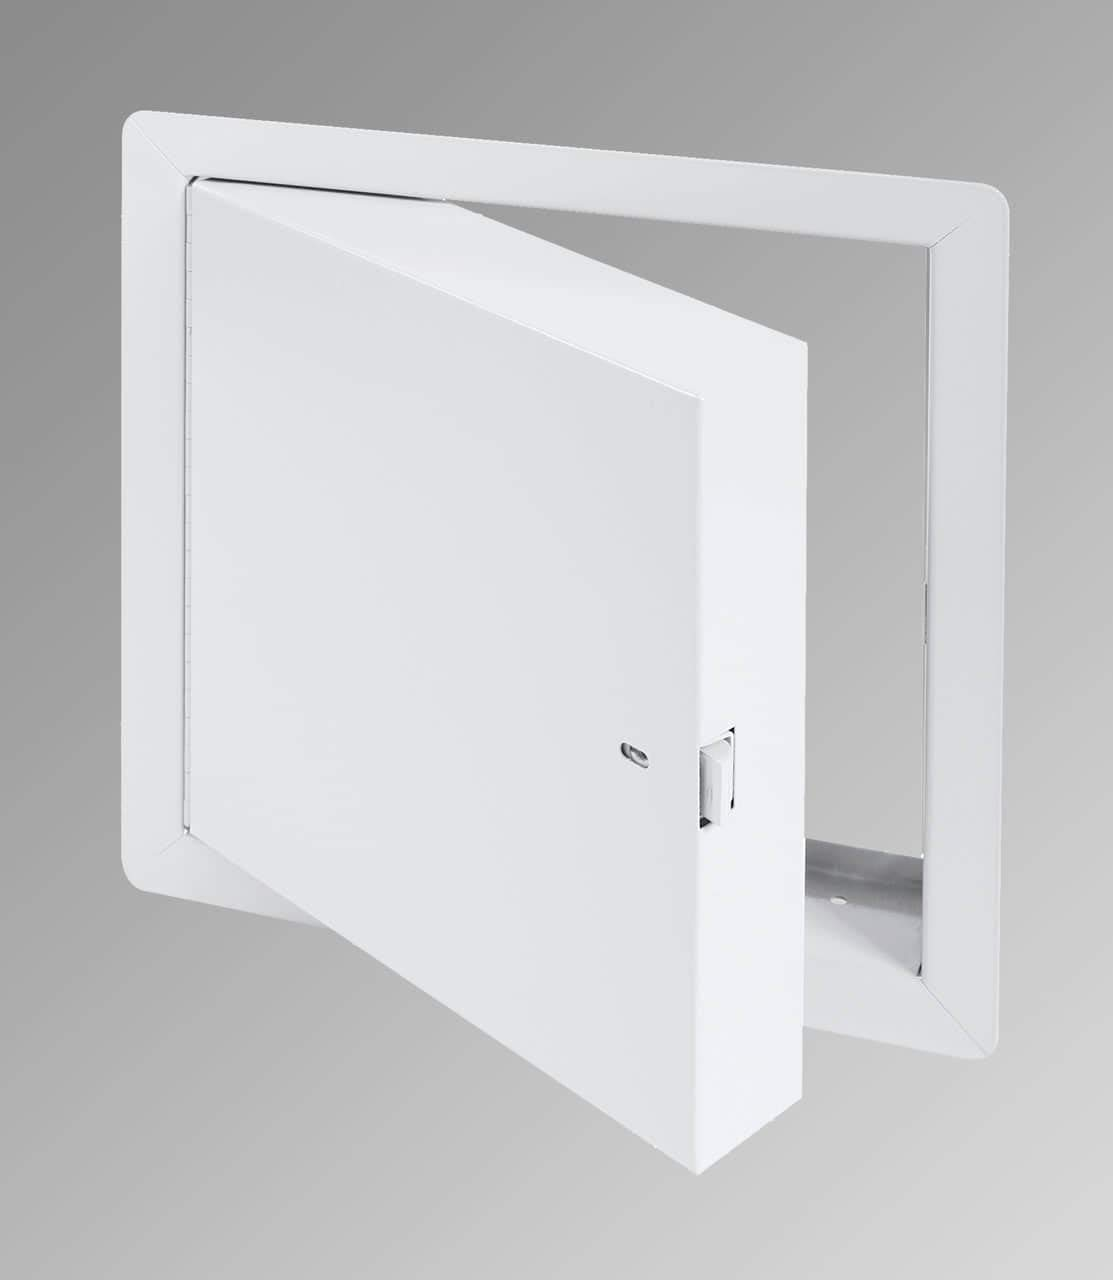 Best - 24'' x 36'' - Fire Rated Insulated Access Door with Flange by Best Access Doors